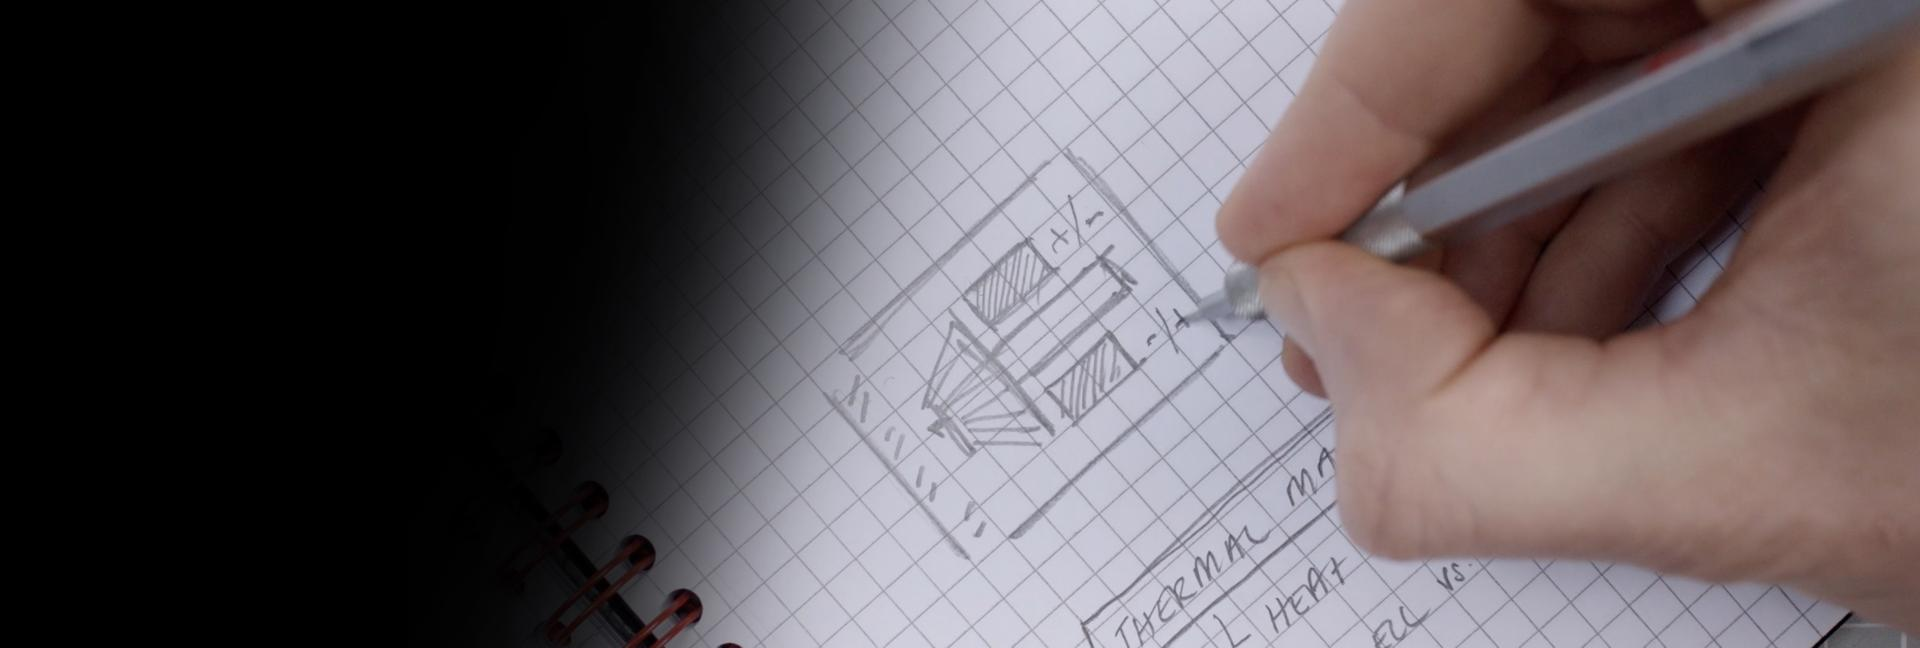 Close-up of James Dyson sketching on paper